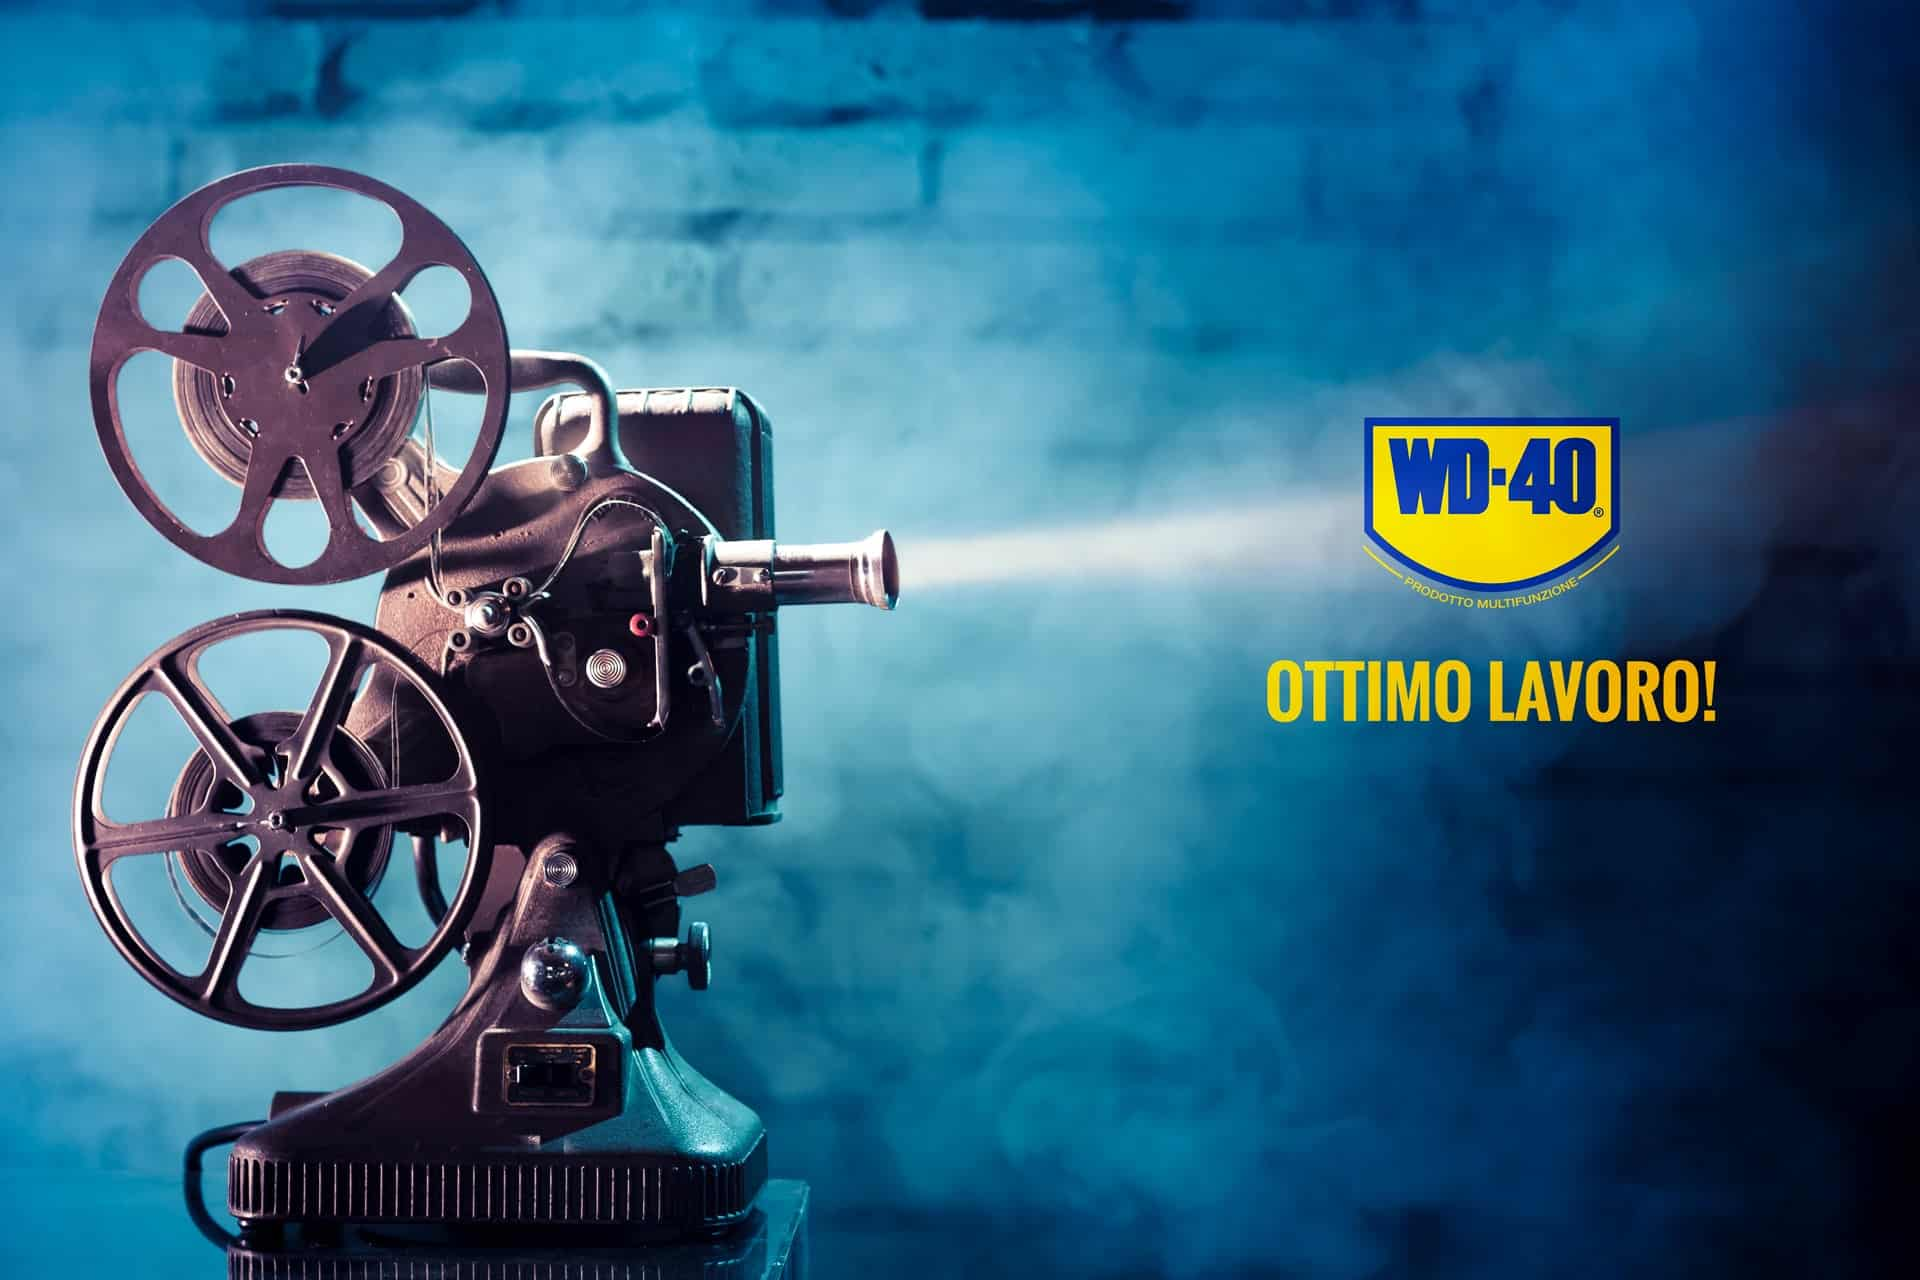 wd 40 ad hollywood